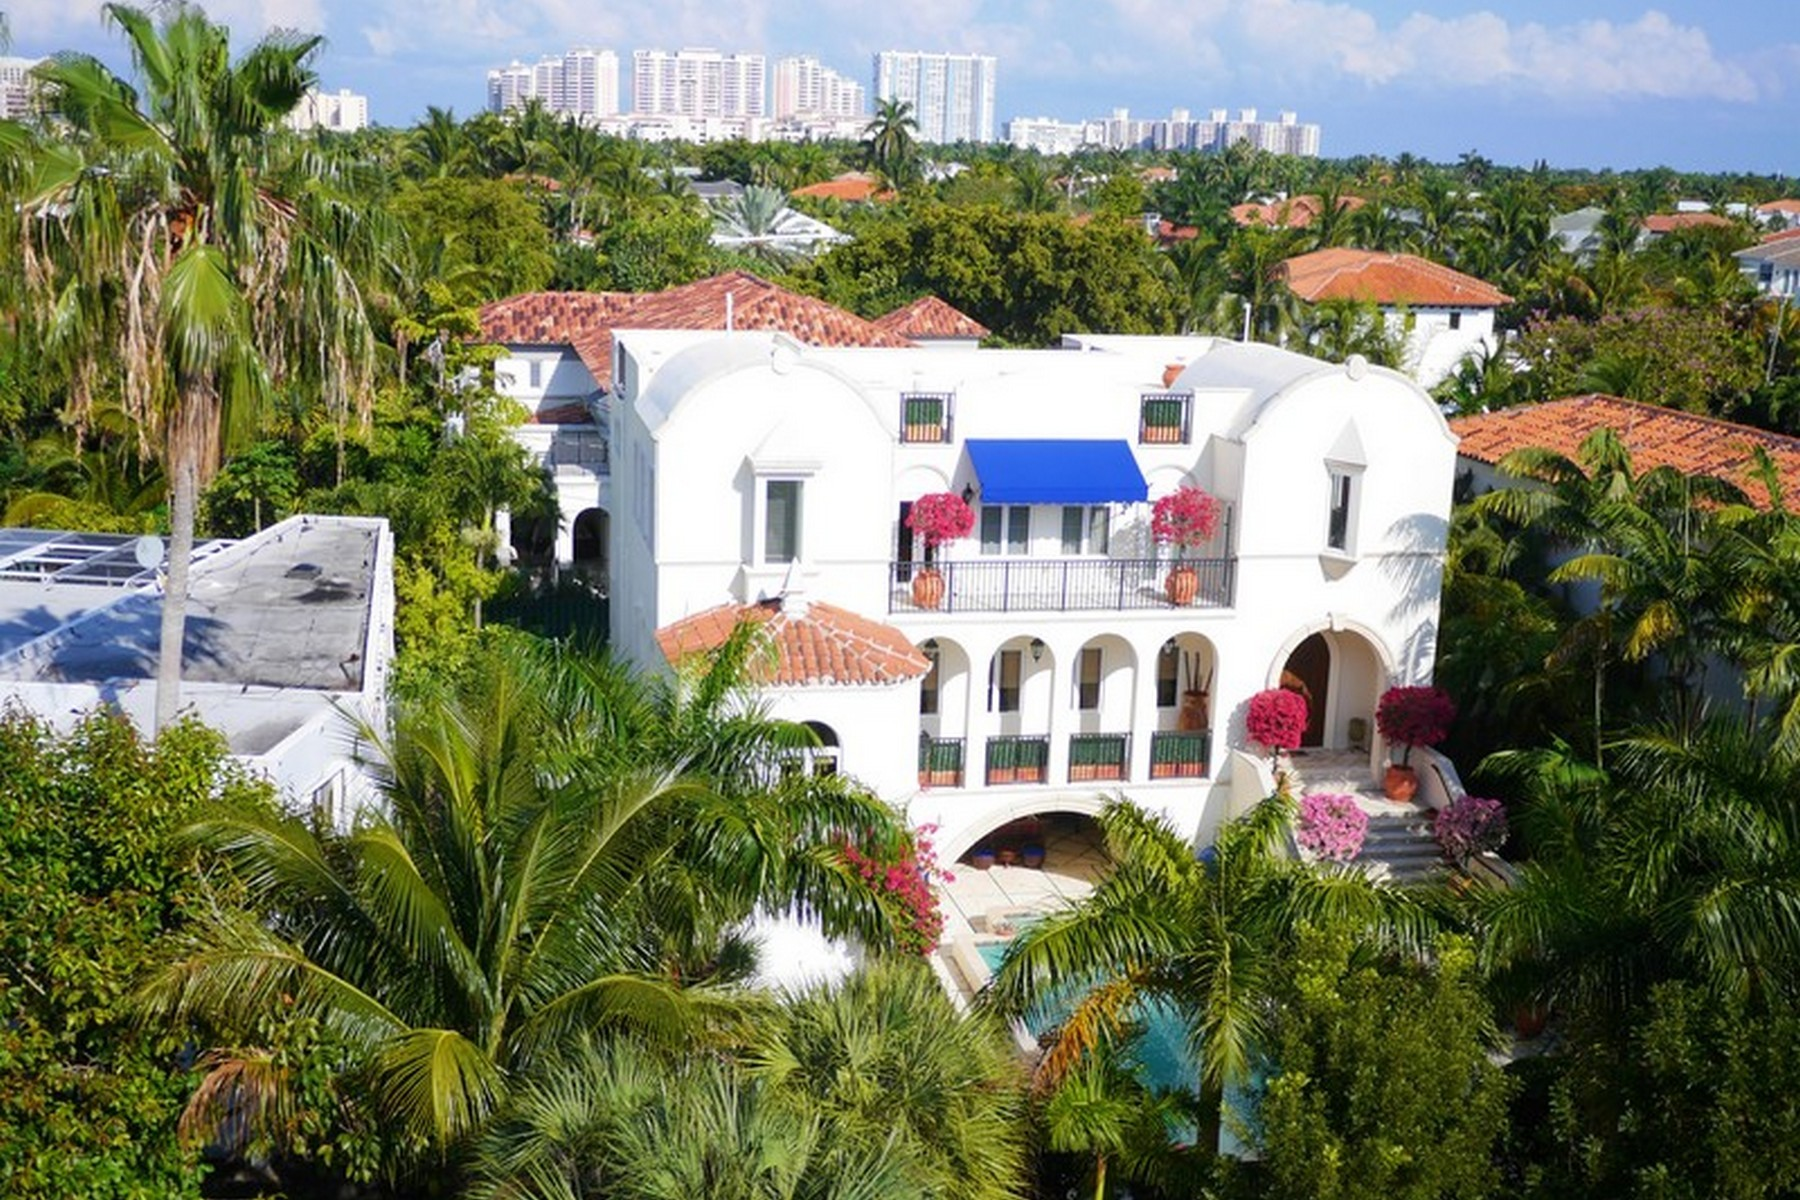 Single Family Home for Sale at 685 Harbor Drive Key Biscayne, Florida, 33149 United States